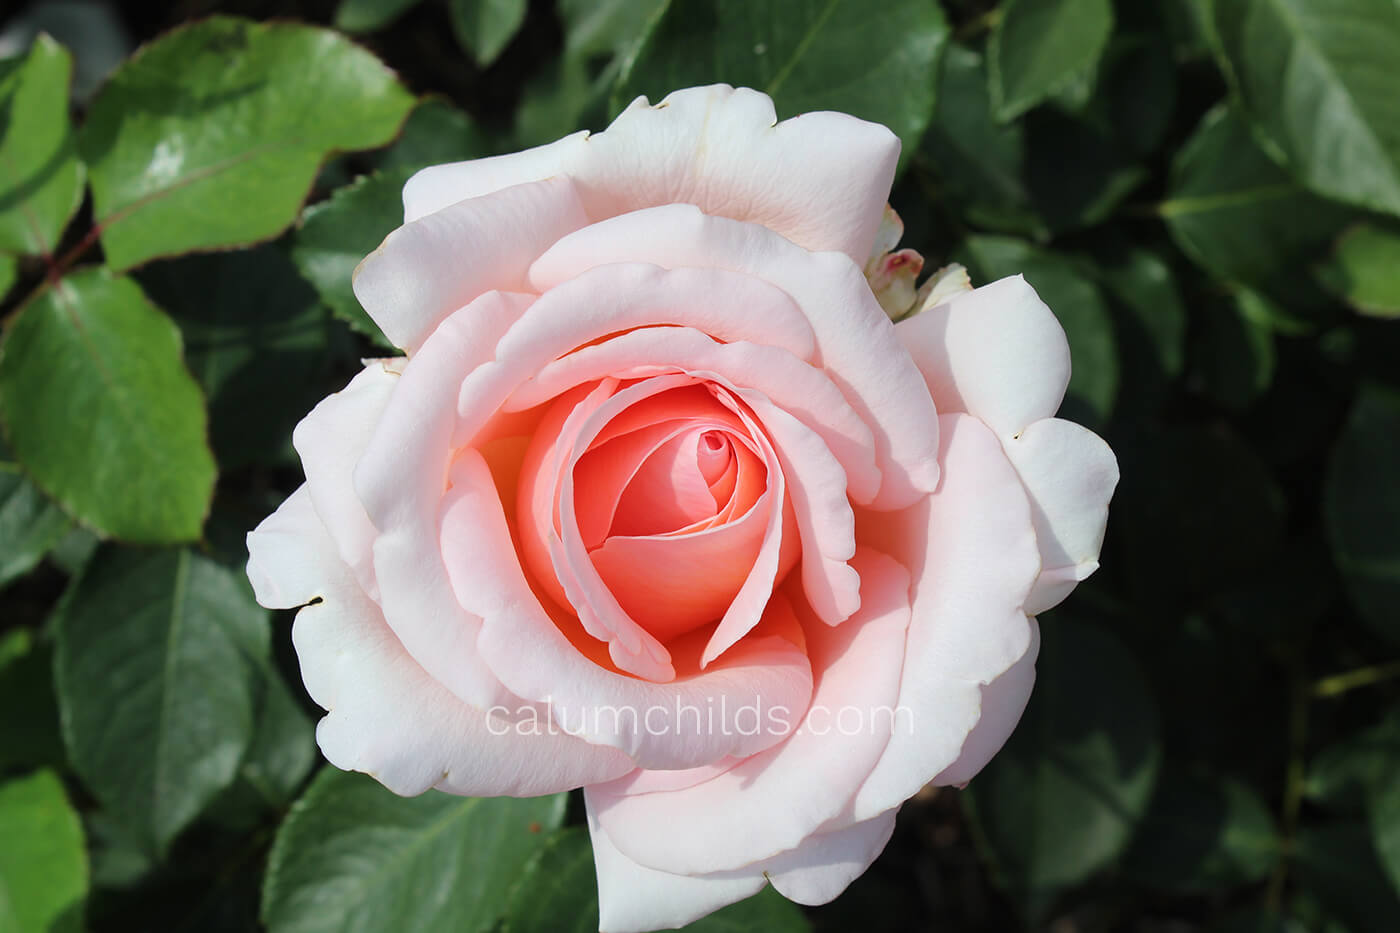 A beautiful pink/white rose in the middle of the picture, surrounded by green leaves.